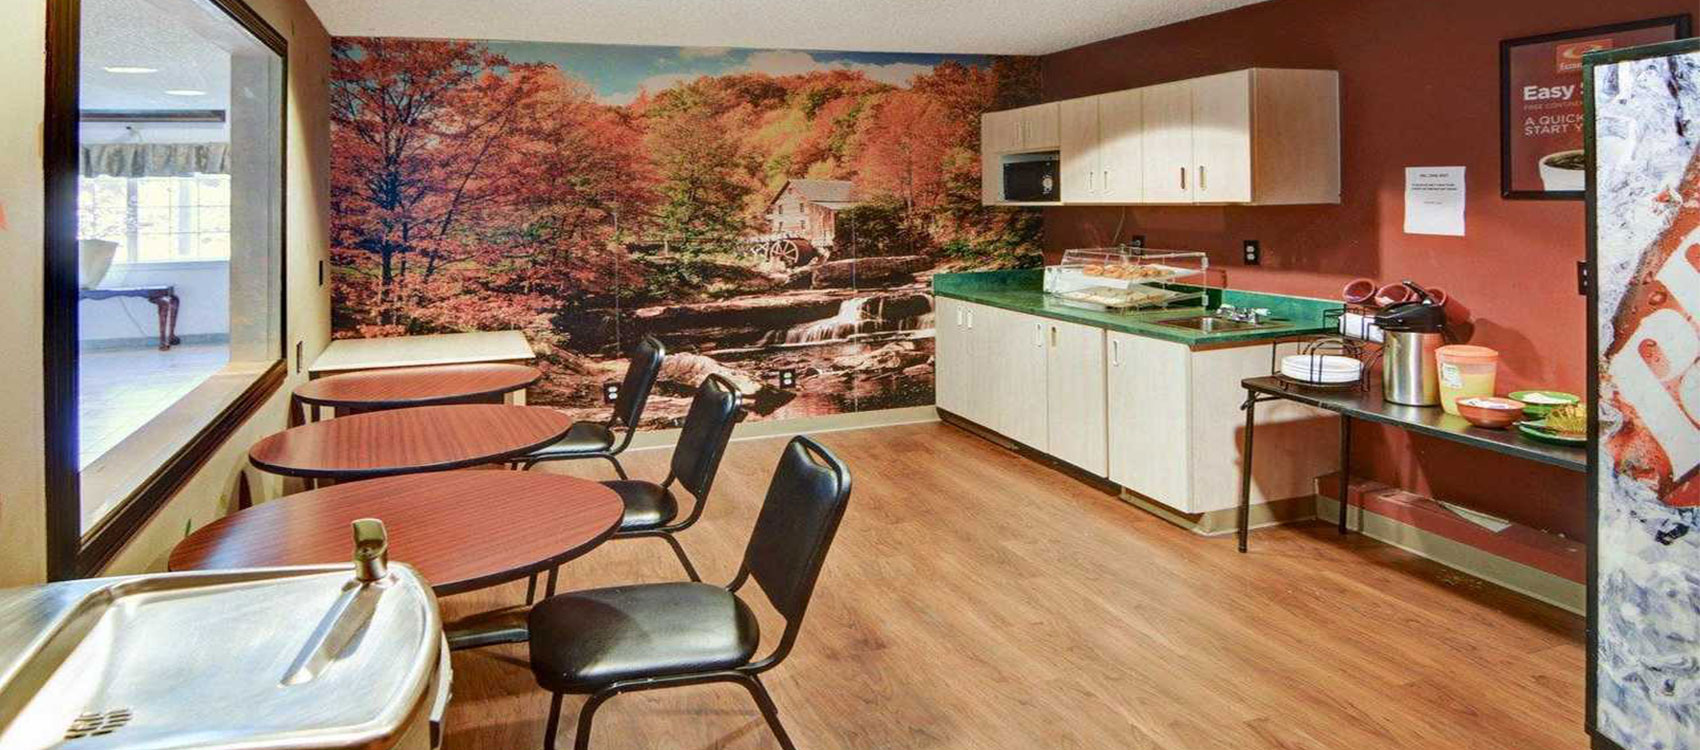 Hotel Econo lodge Lewisville Breakfast Area